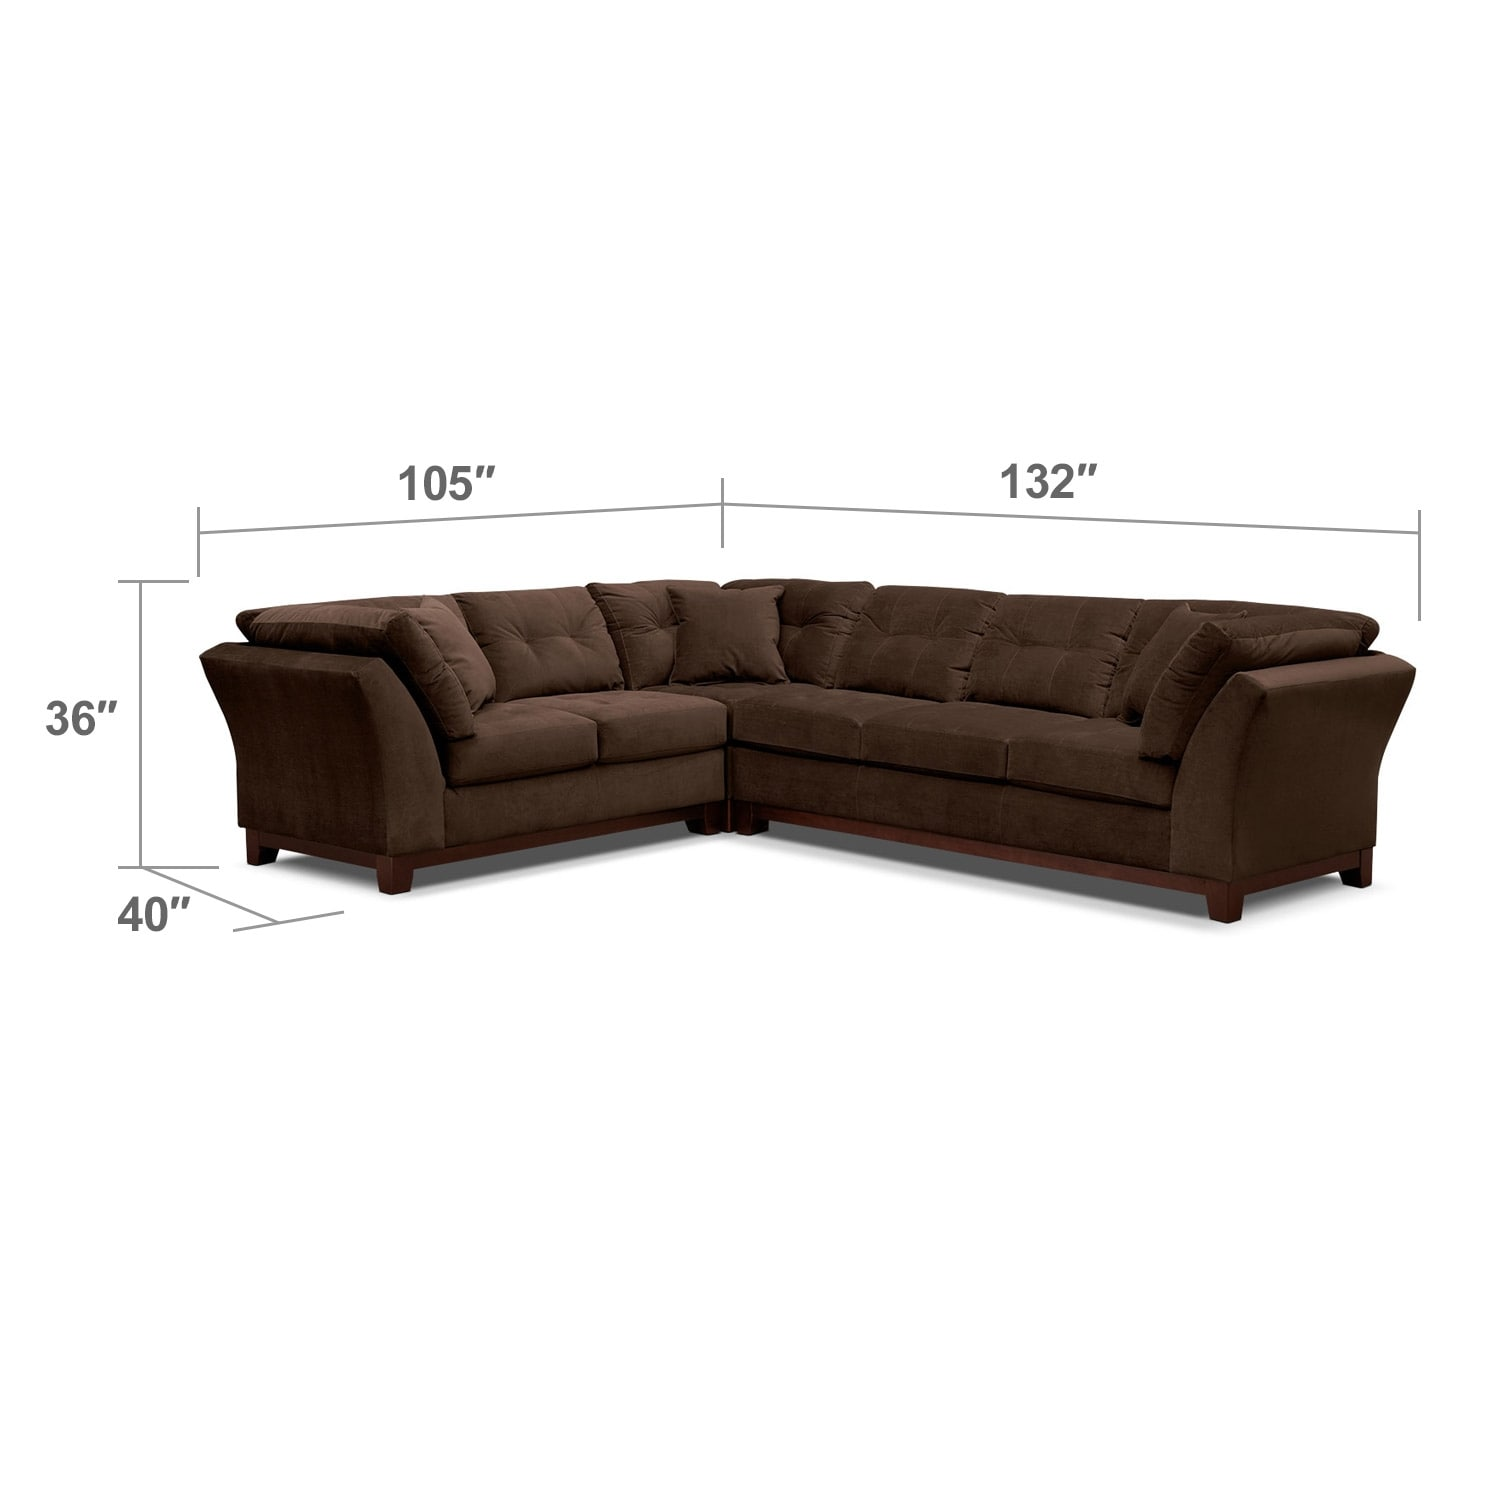 Living Room Furniture - Solace 3-Piece Right-Facing Sofa Sectional - Chocolate